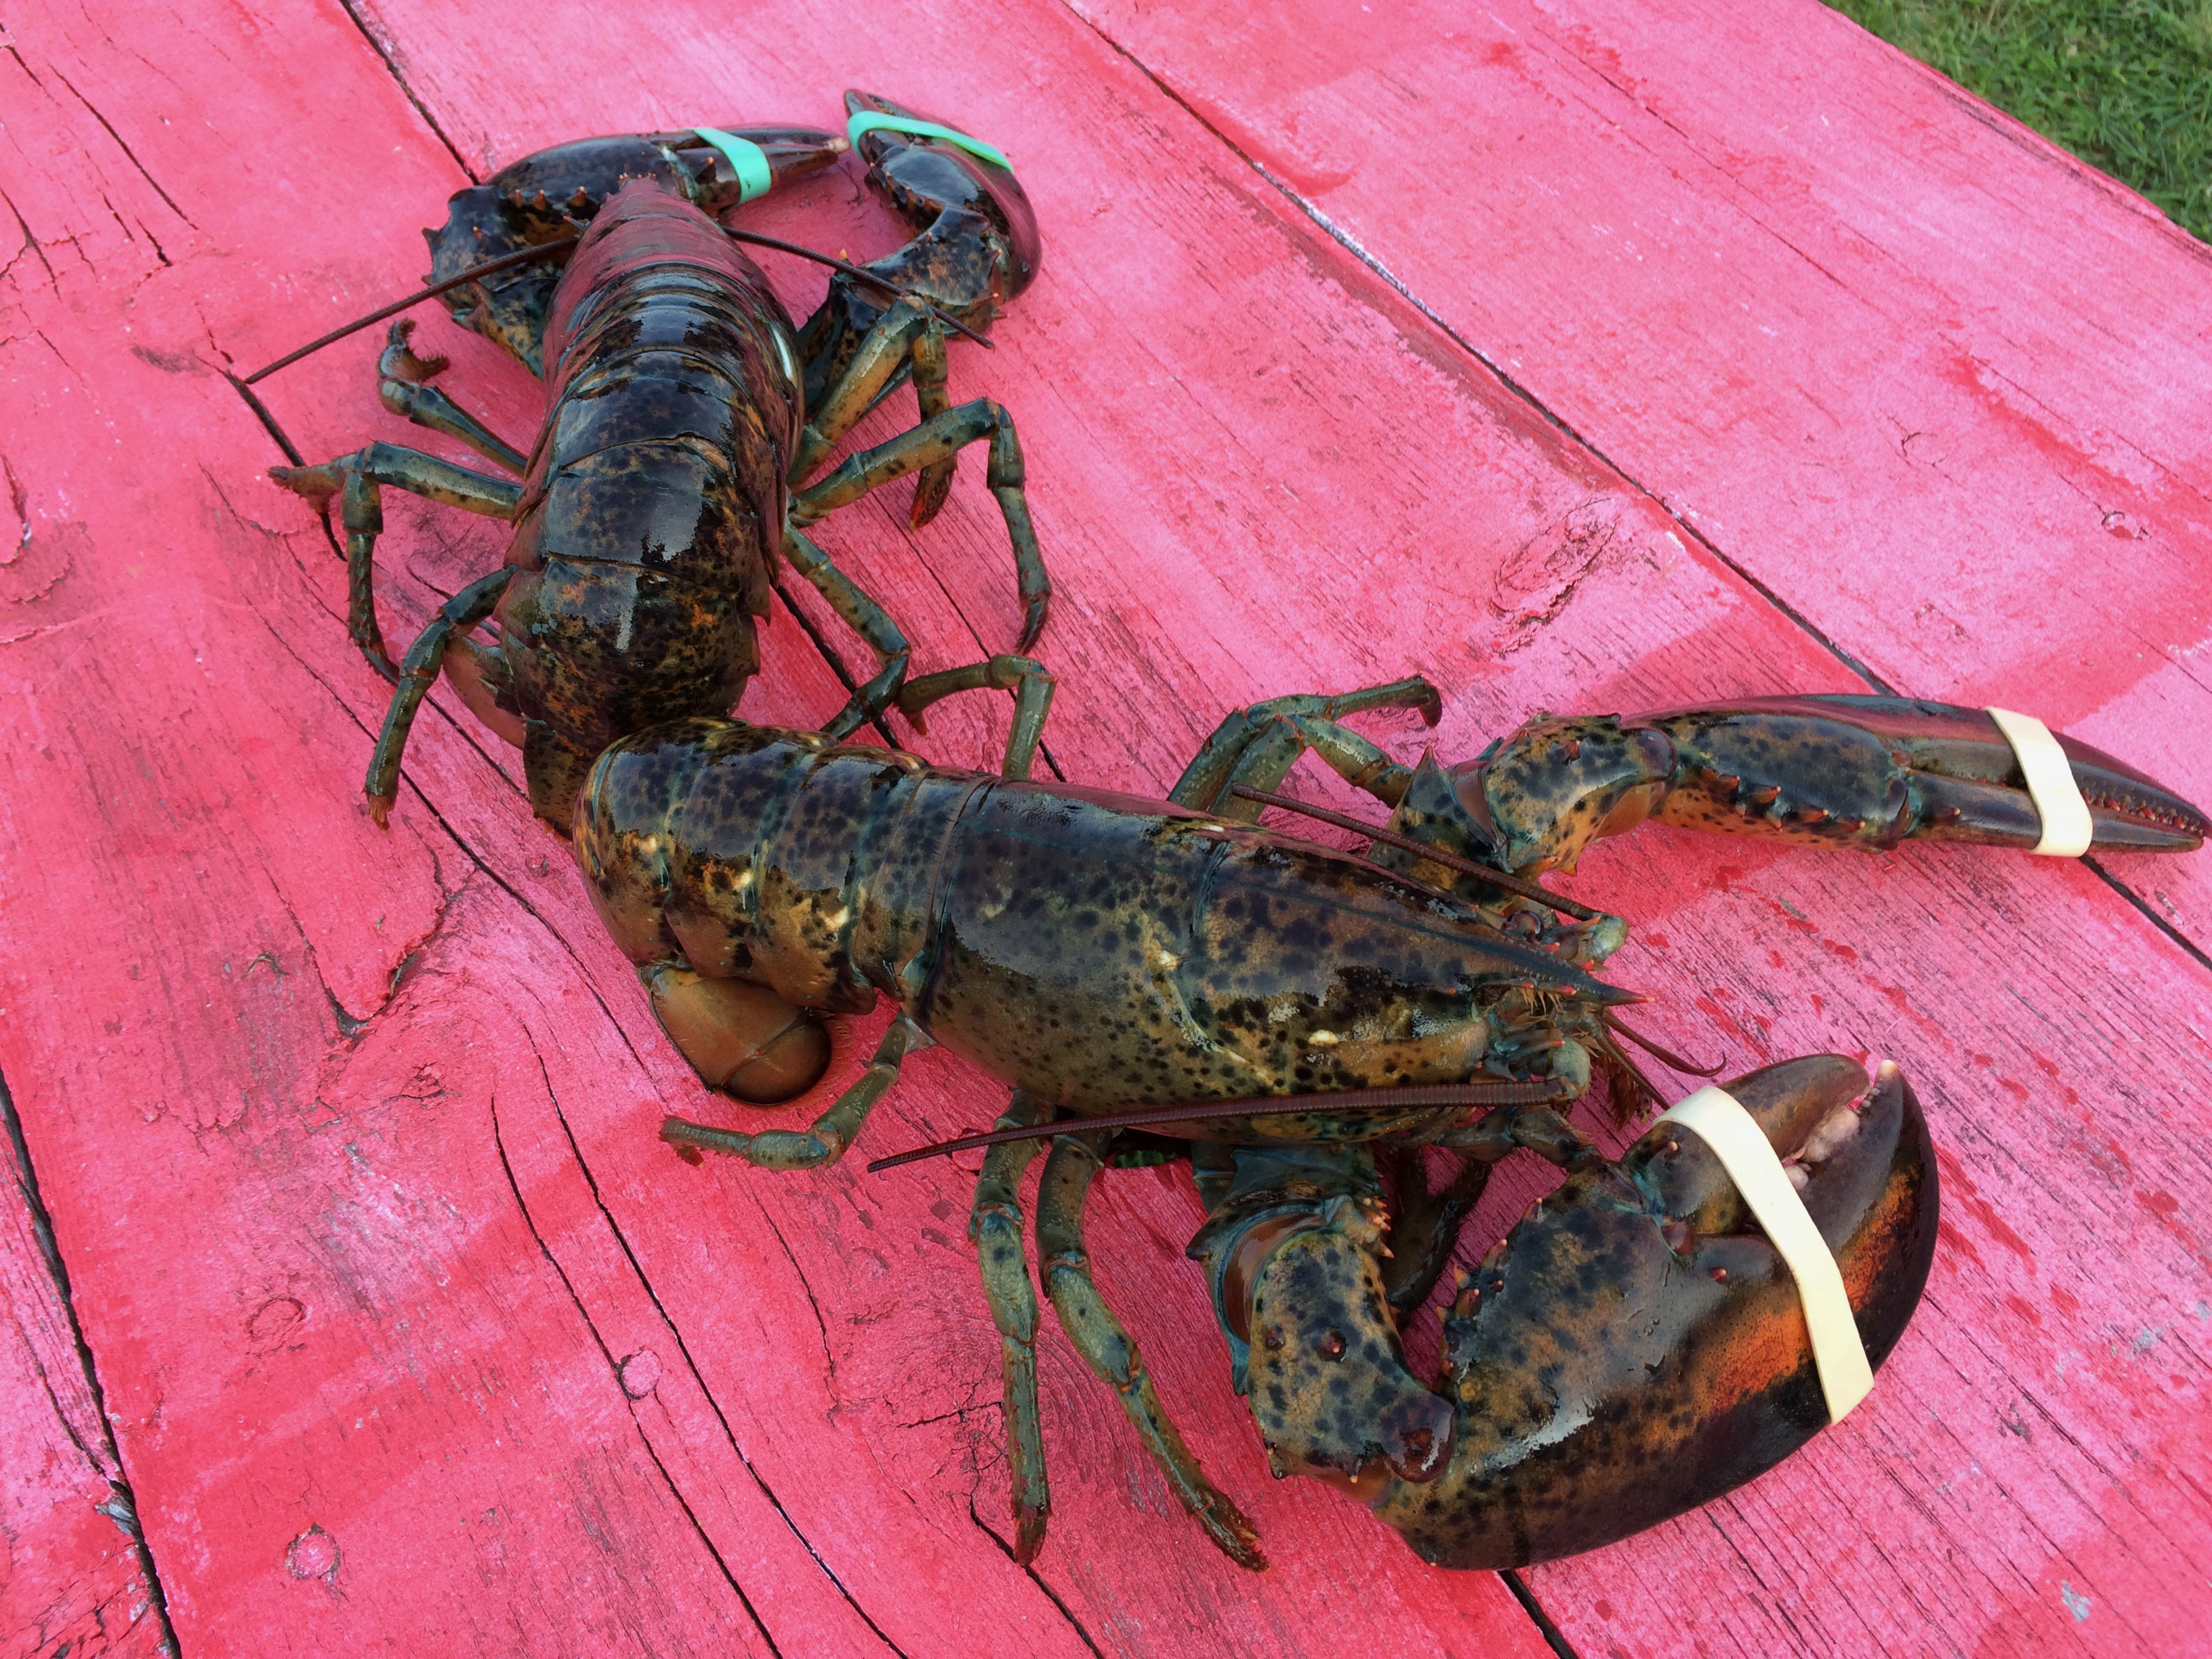 Live lobsters on the picnic table